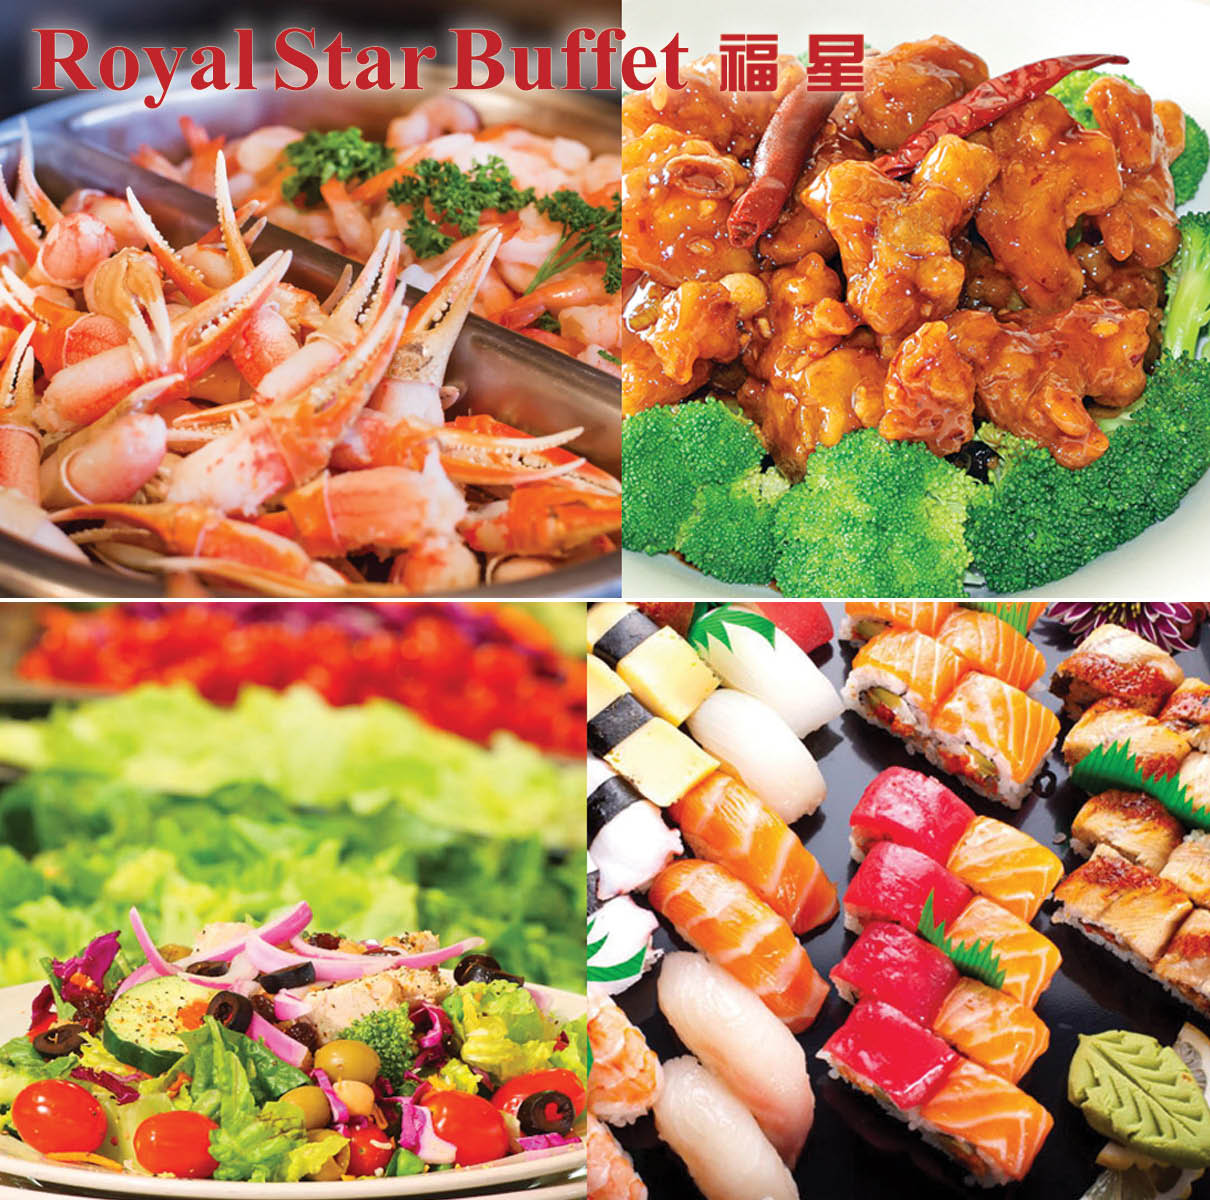 Royal Star Buffet logo over-layered on pictures of Seafood, Chinese food, fresh salads and sushi located in Mount Vernon.